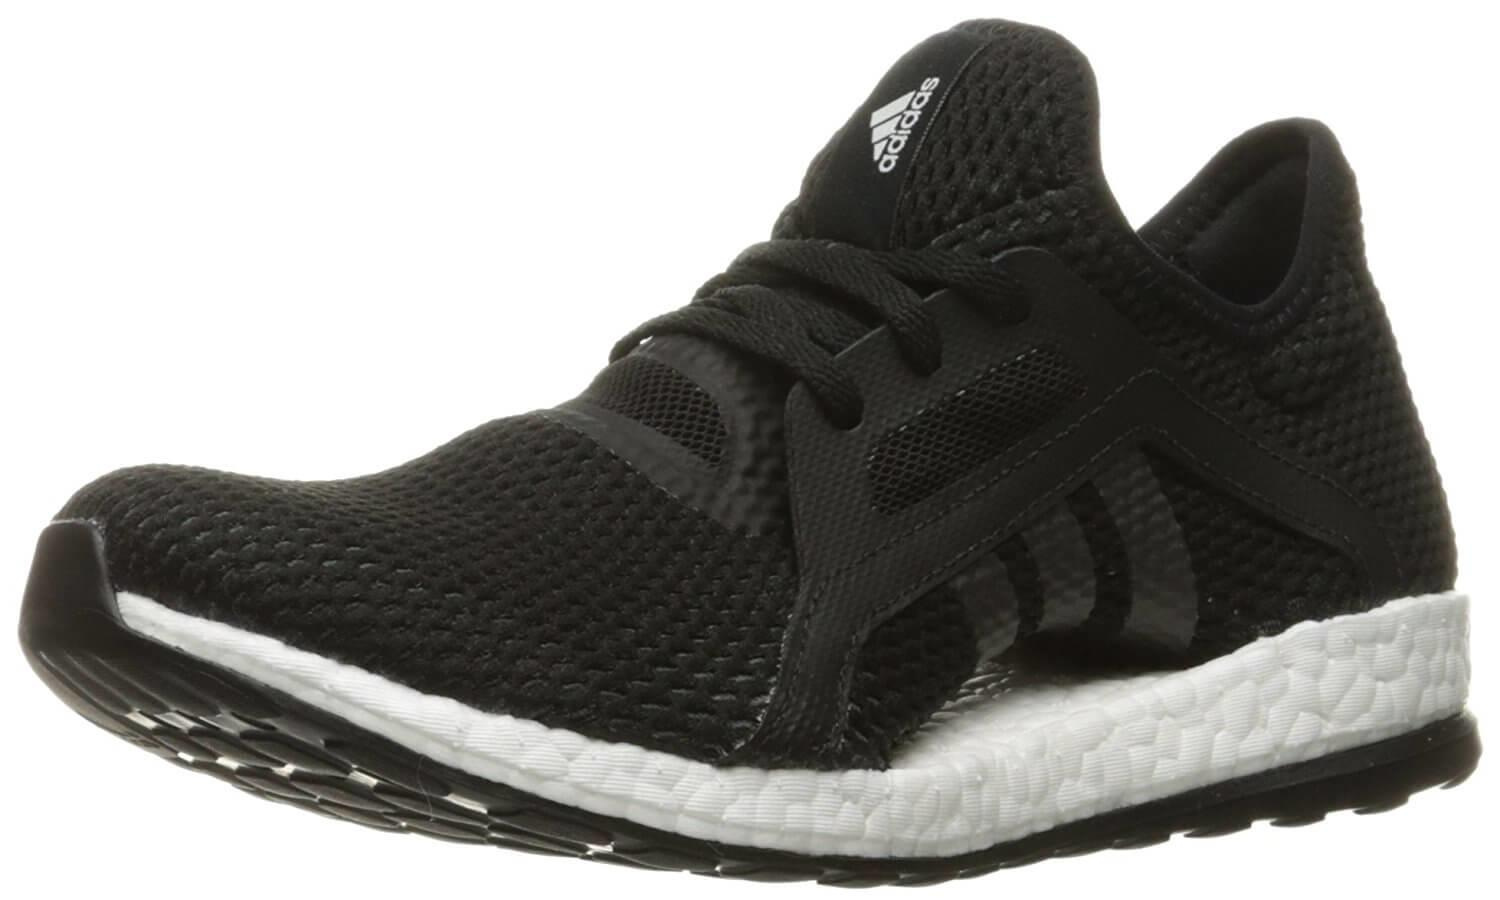 e9ead94f9 Adidas PureBoost X Reviewed - To Buy or Not in May 2019